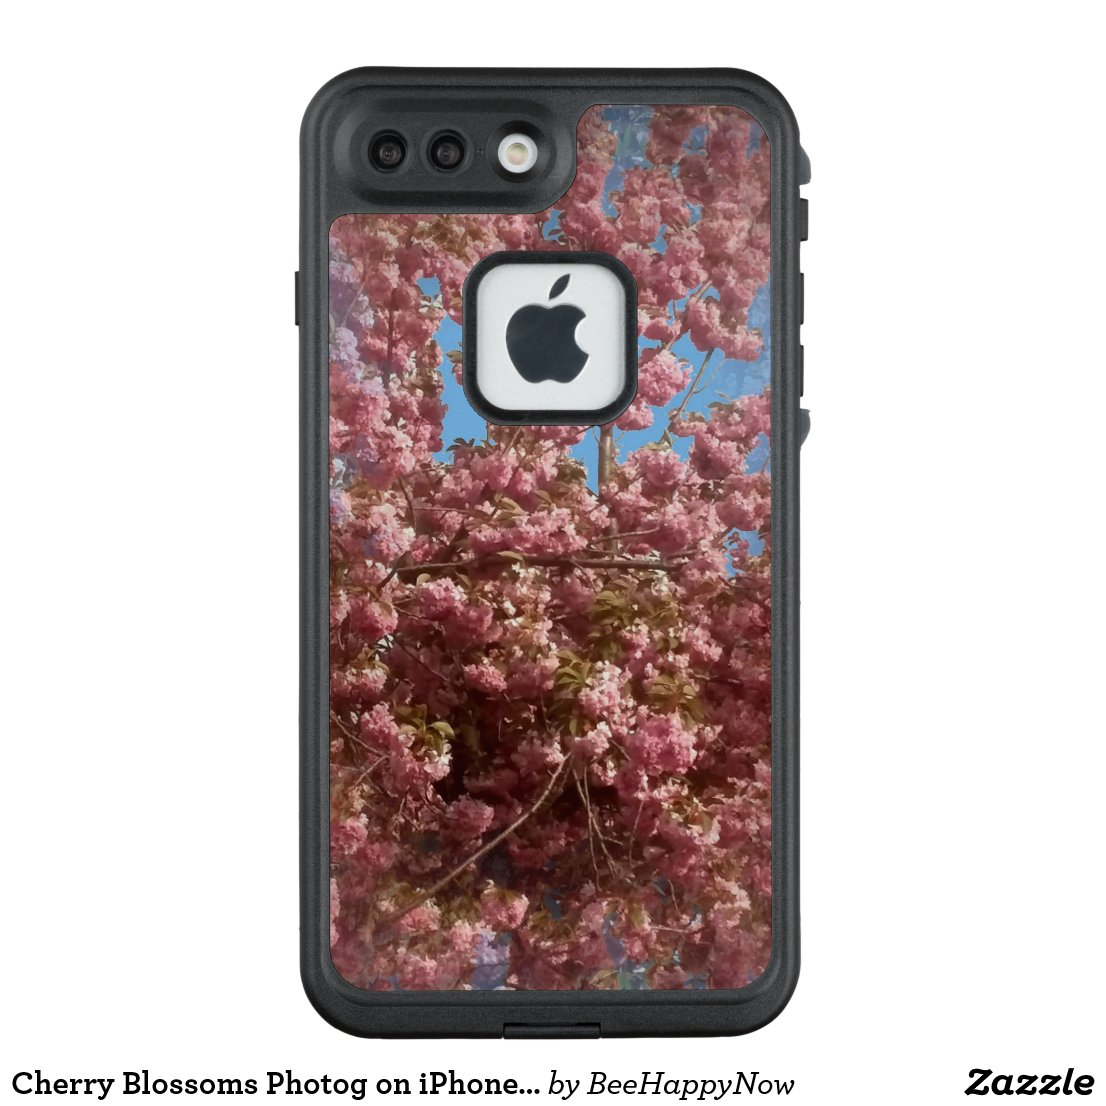 Cherry Blossoms Photog on iPhone 7 Cover